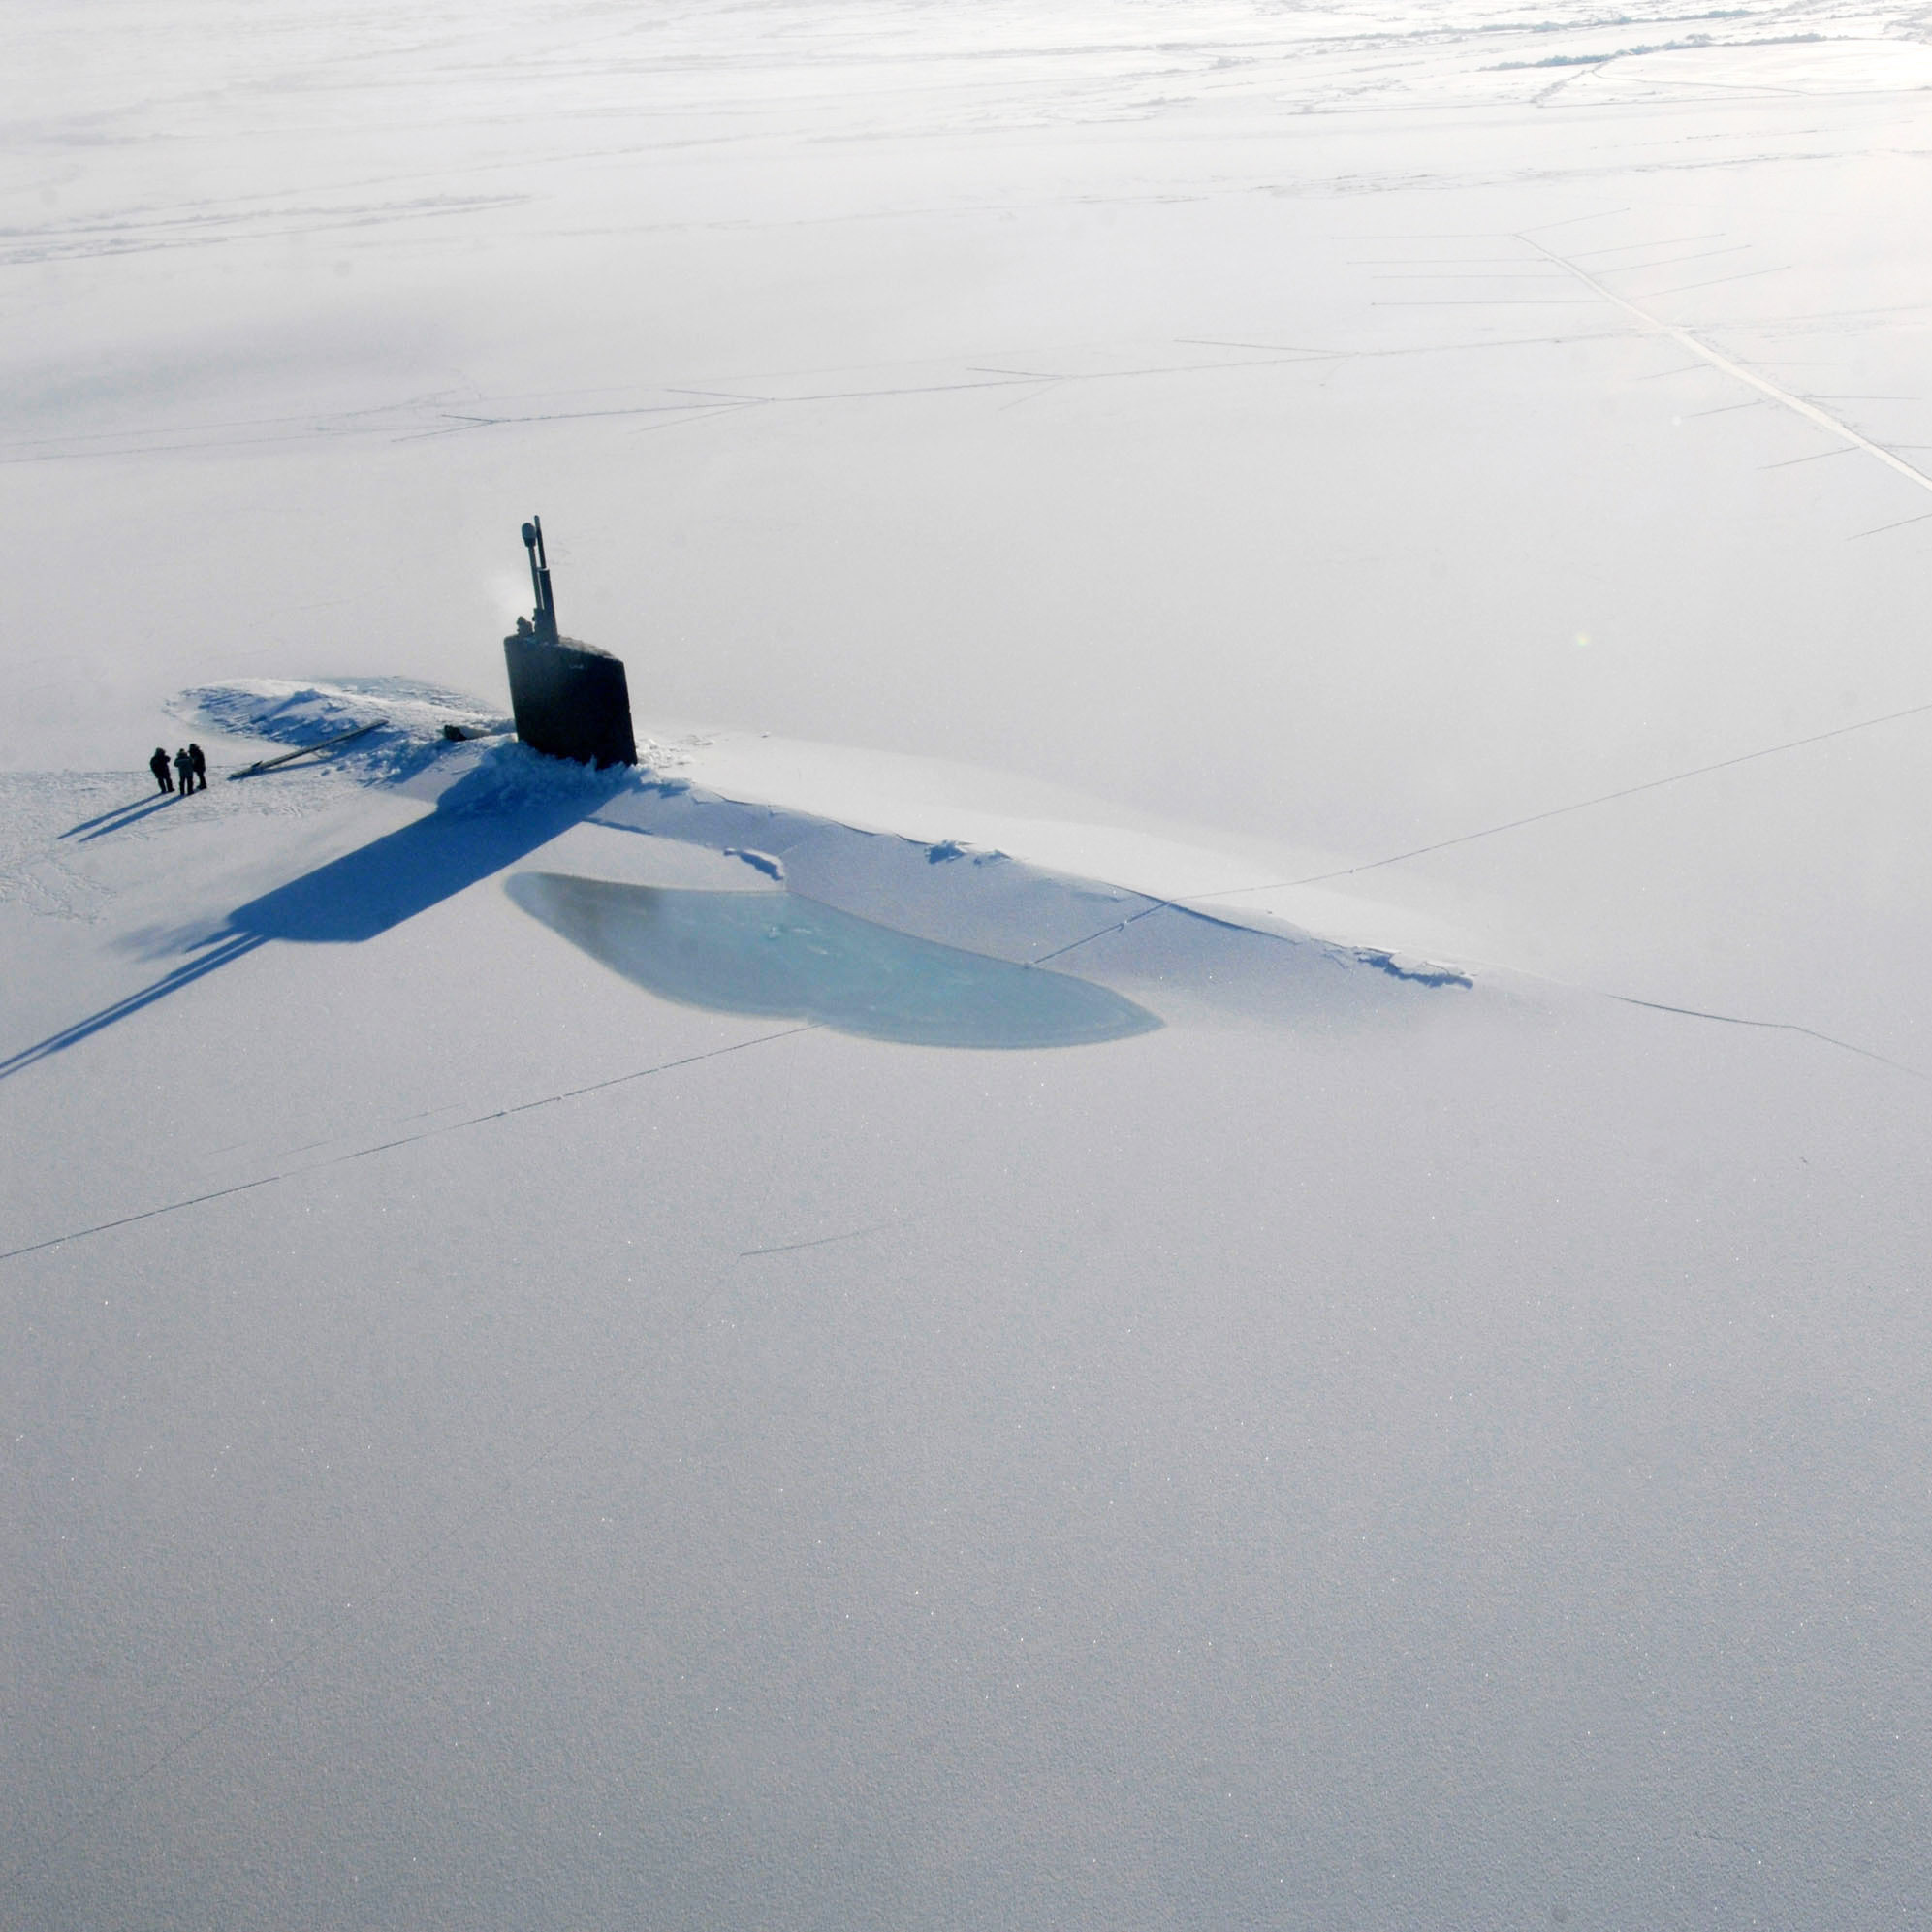 By midcentury, trans-Arctic passages will no longer be solely for submarines, a new study says.